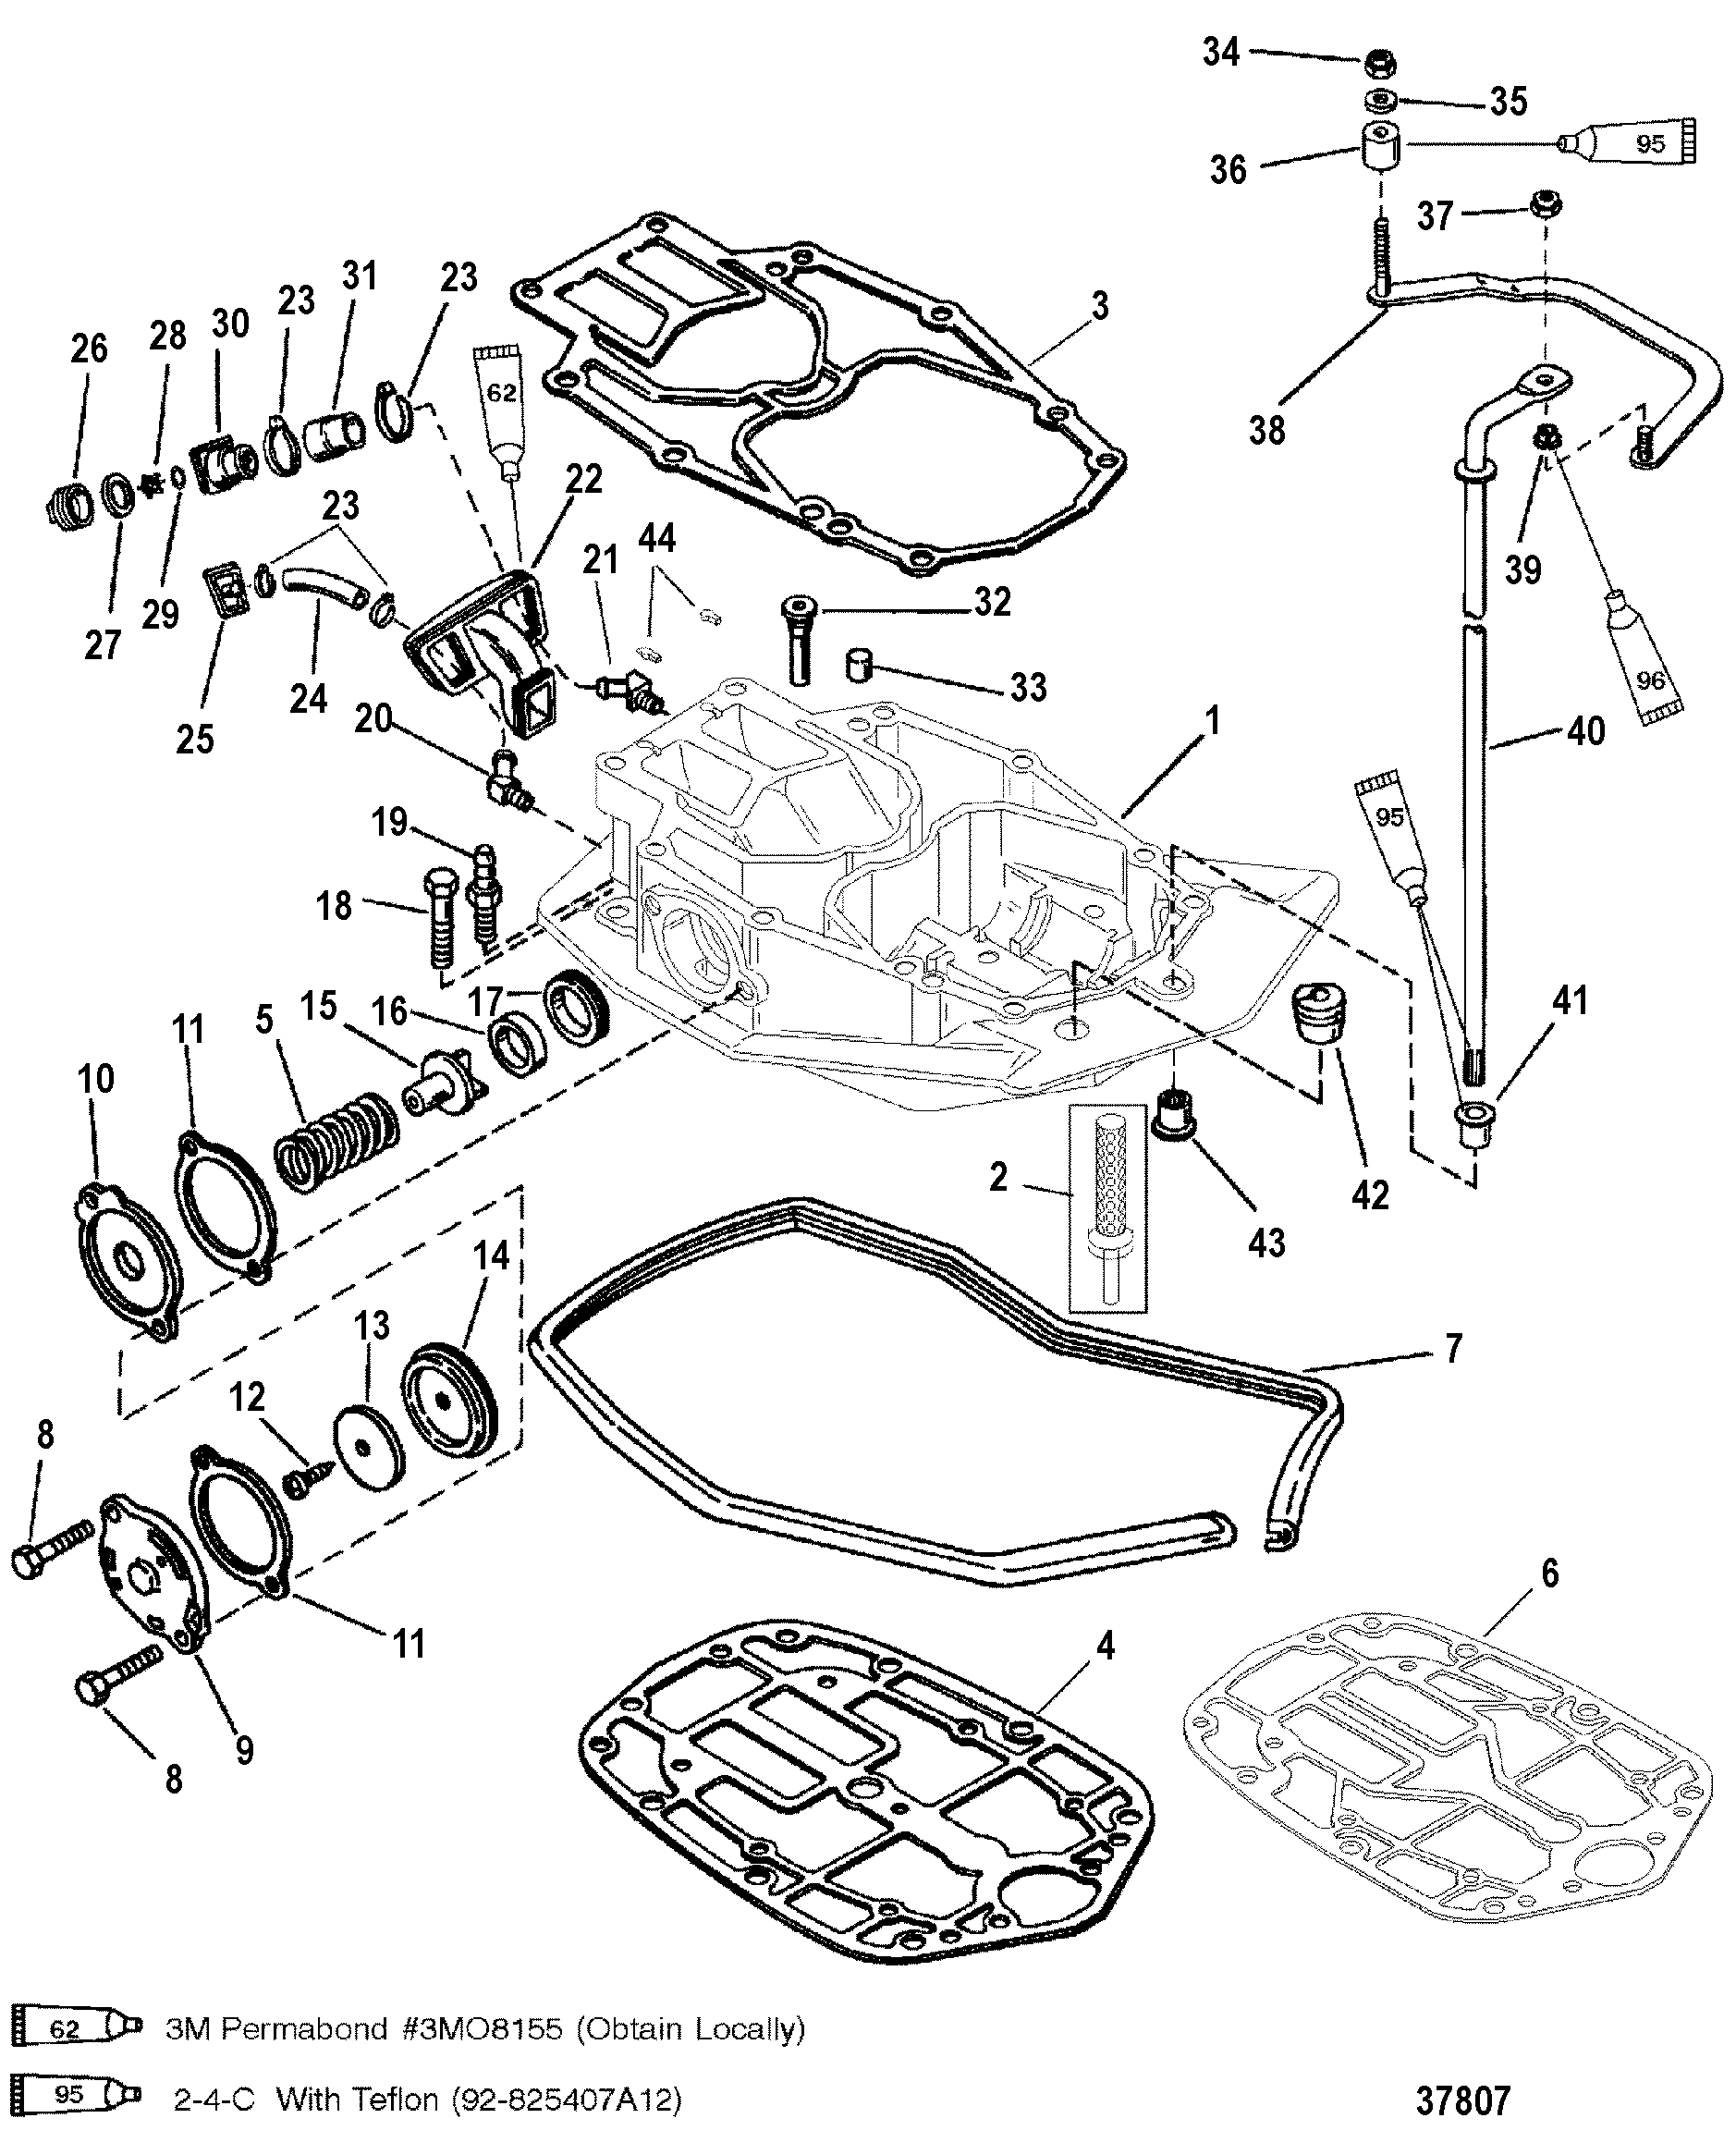 i have a 1998 promax 225 that has the overheat sensor going off we have tested the water temp ... 1954 mercury monterey wiring diagram